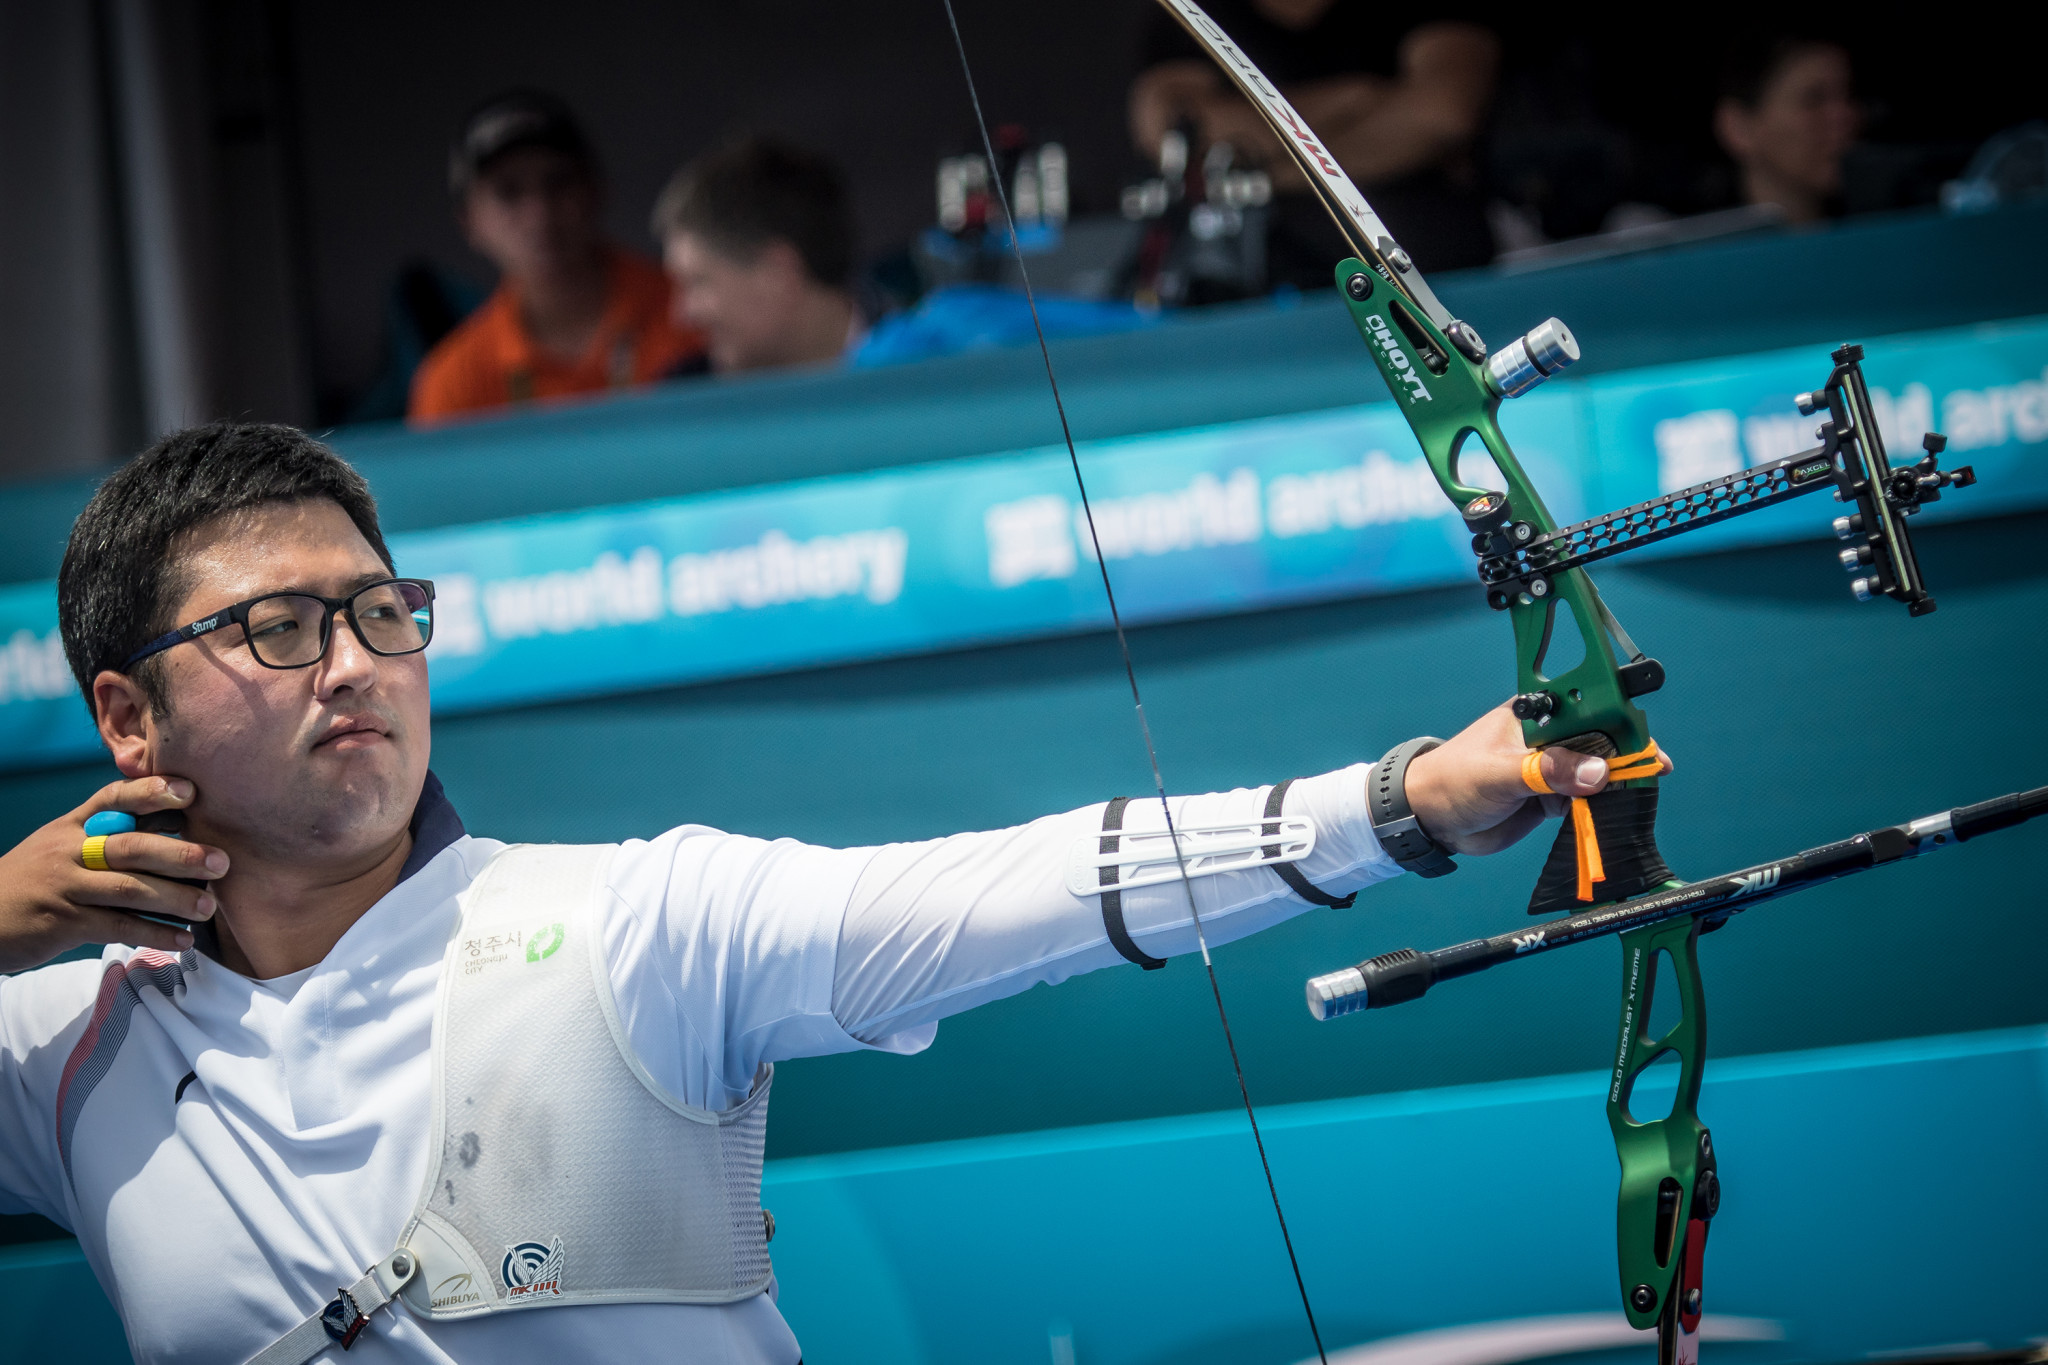 World number one ousts returning Barnes at Archery World Cup in Berlin